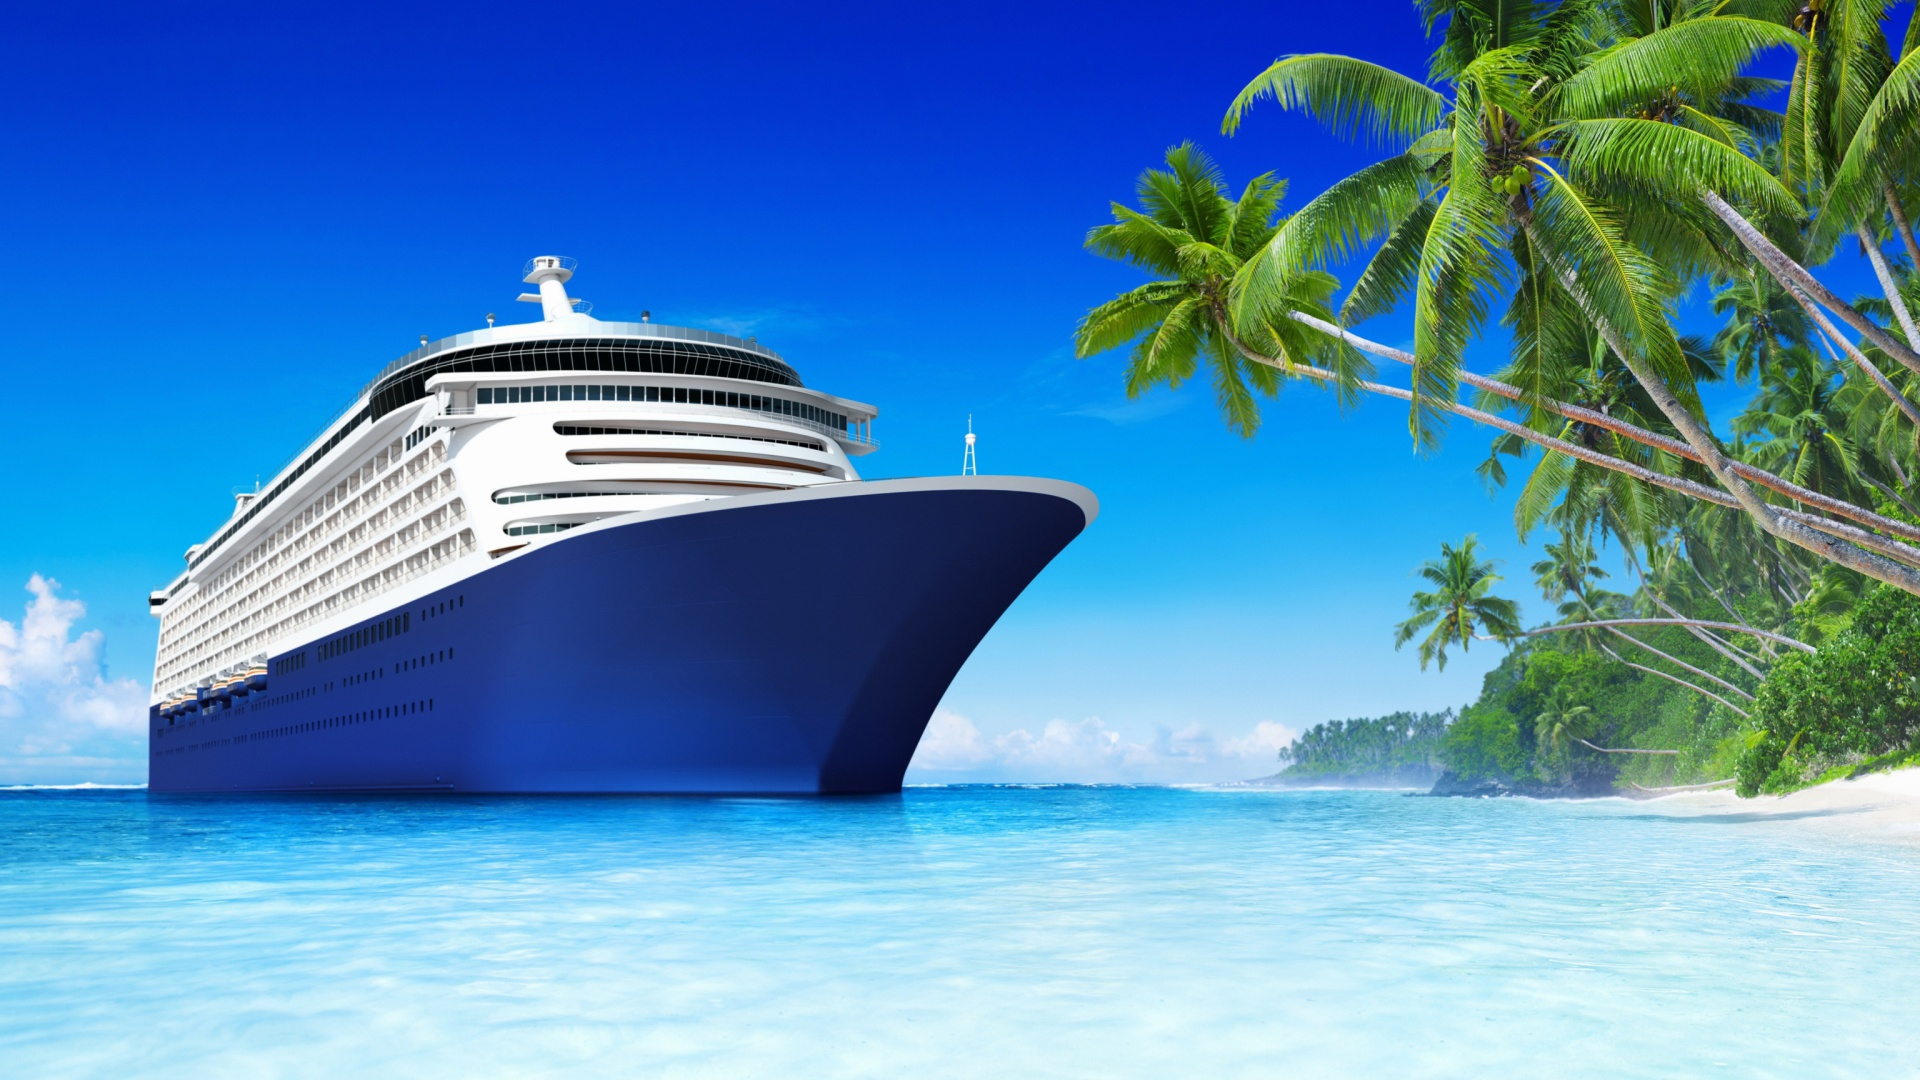 Royal Tropics Cruise Wallpaper for Desktop 1920x1080 Full HD 1920x1080